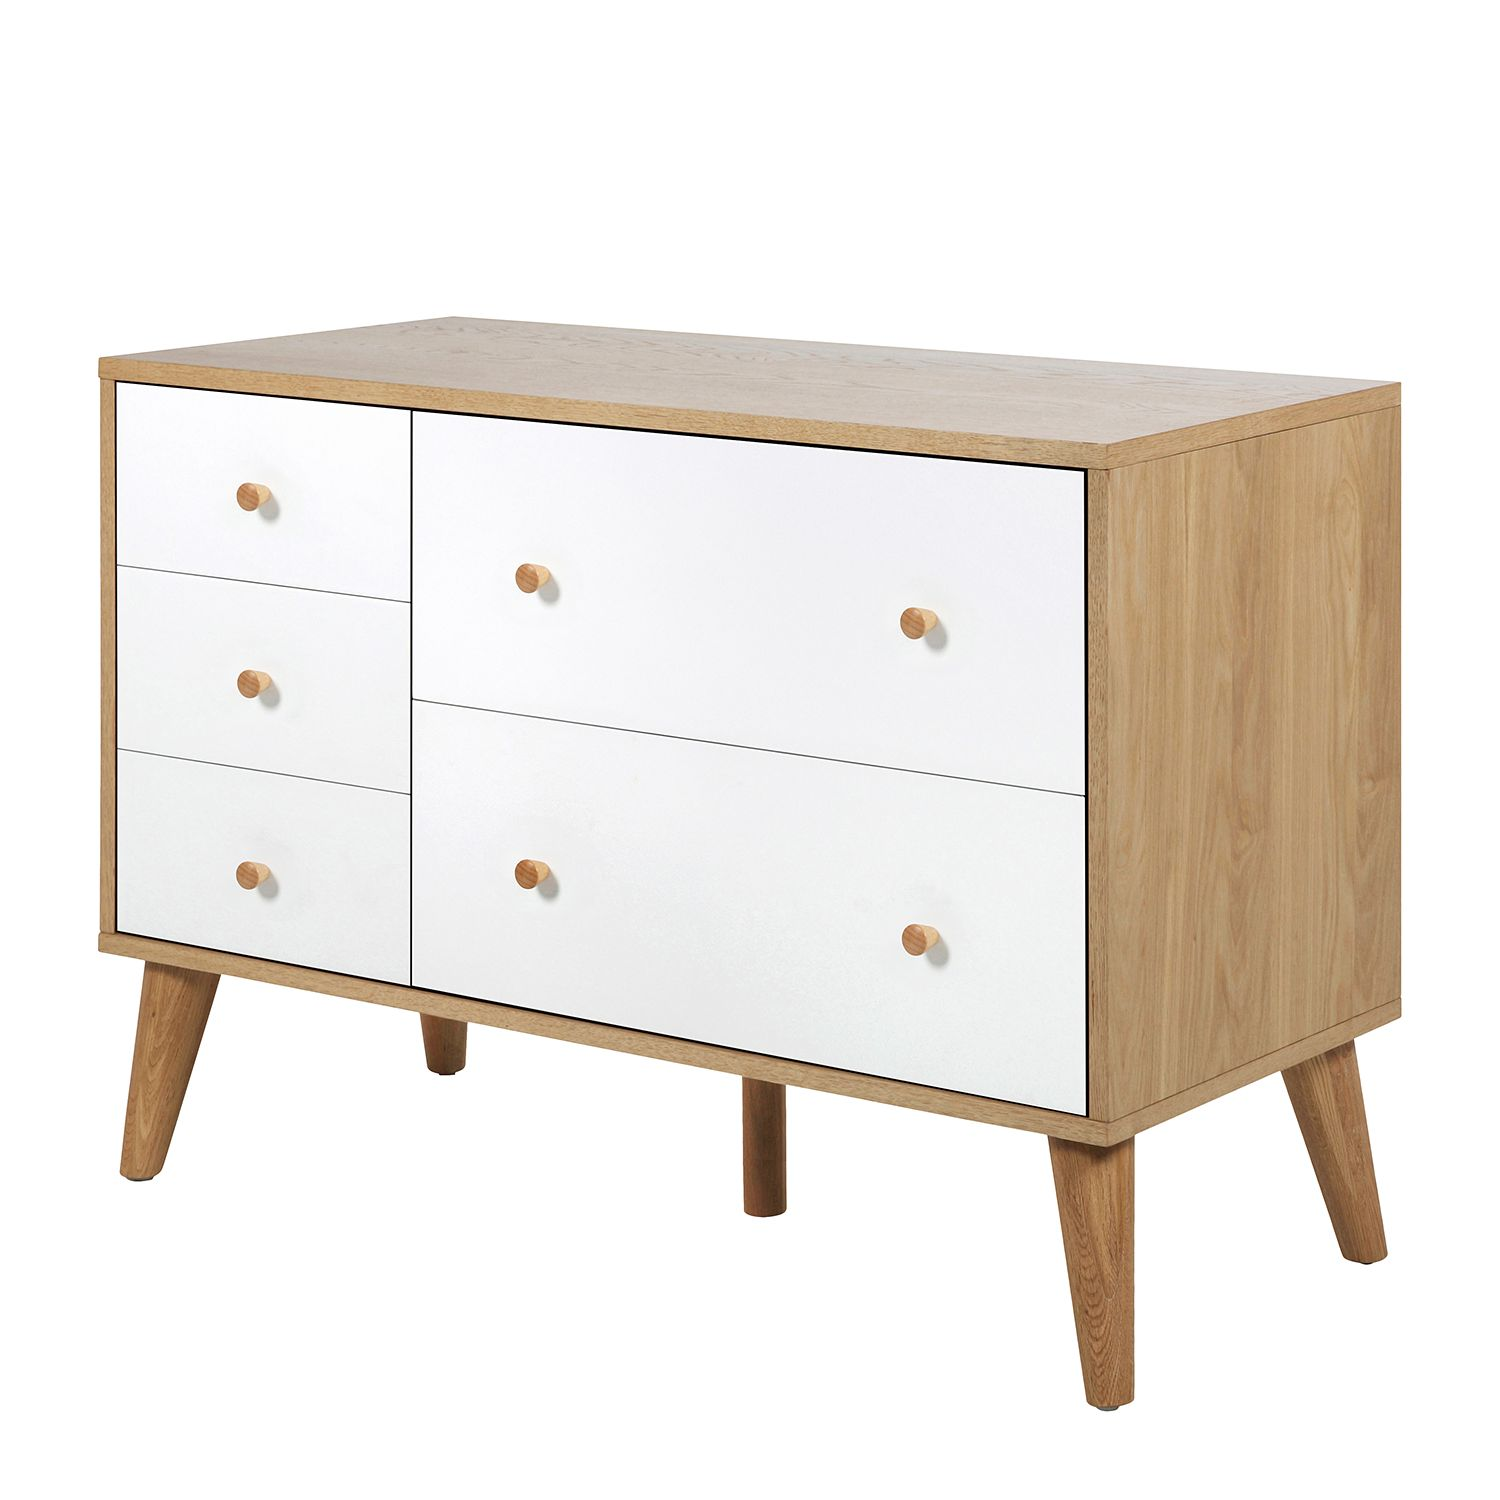 Commode Olav I - Chêne / Blanc, Morteens